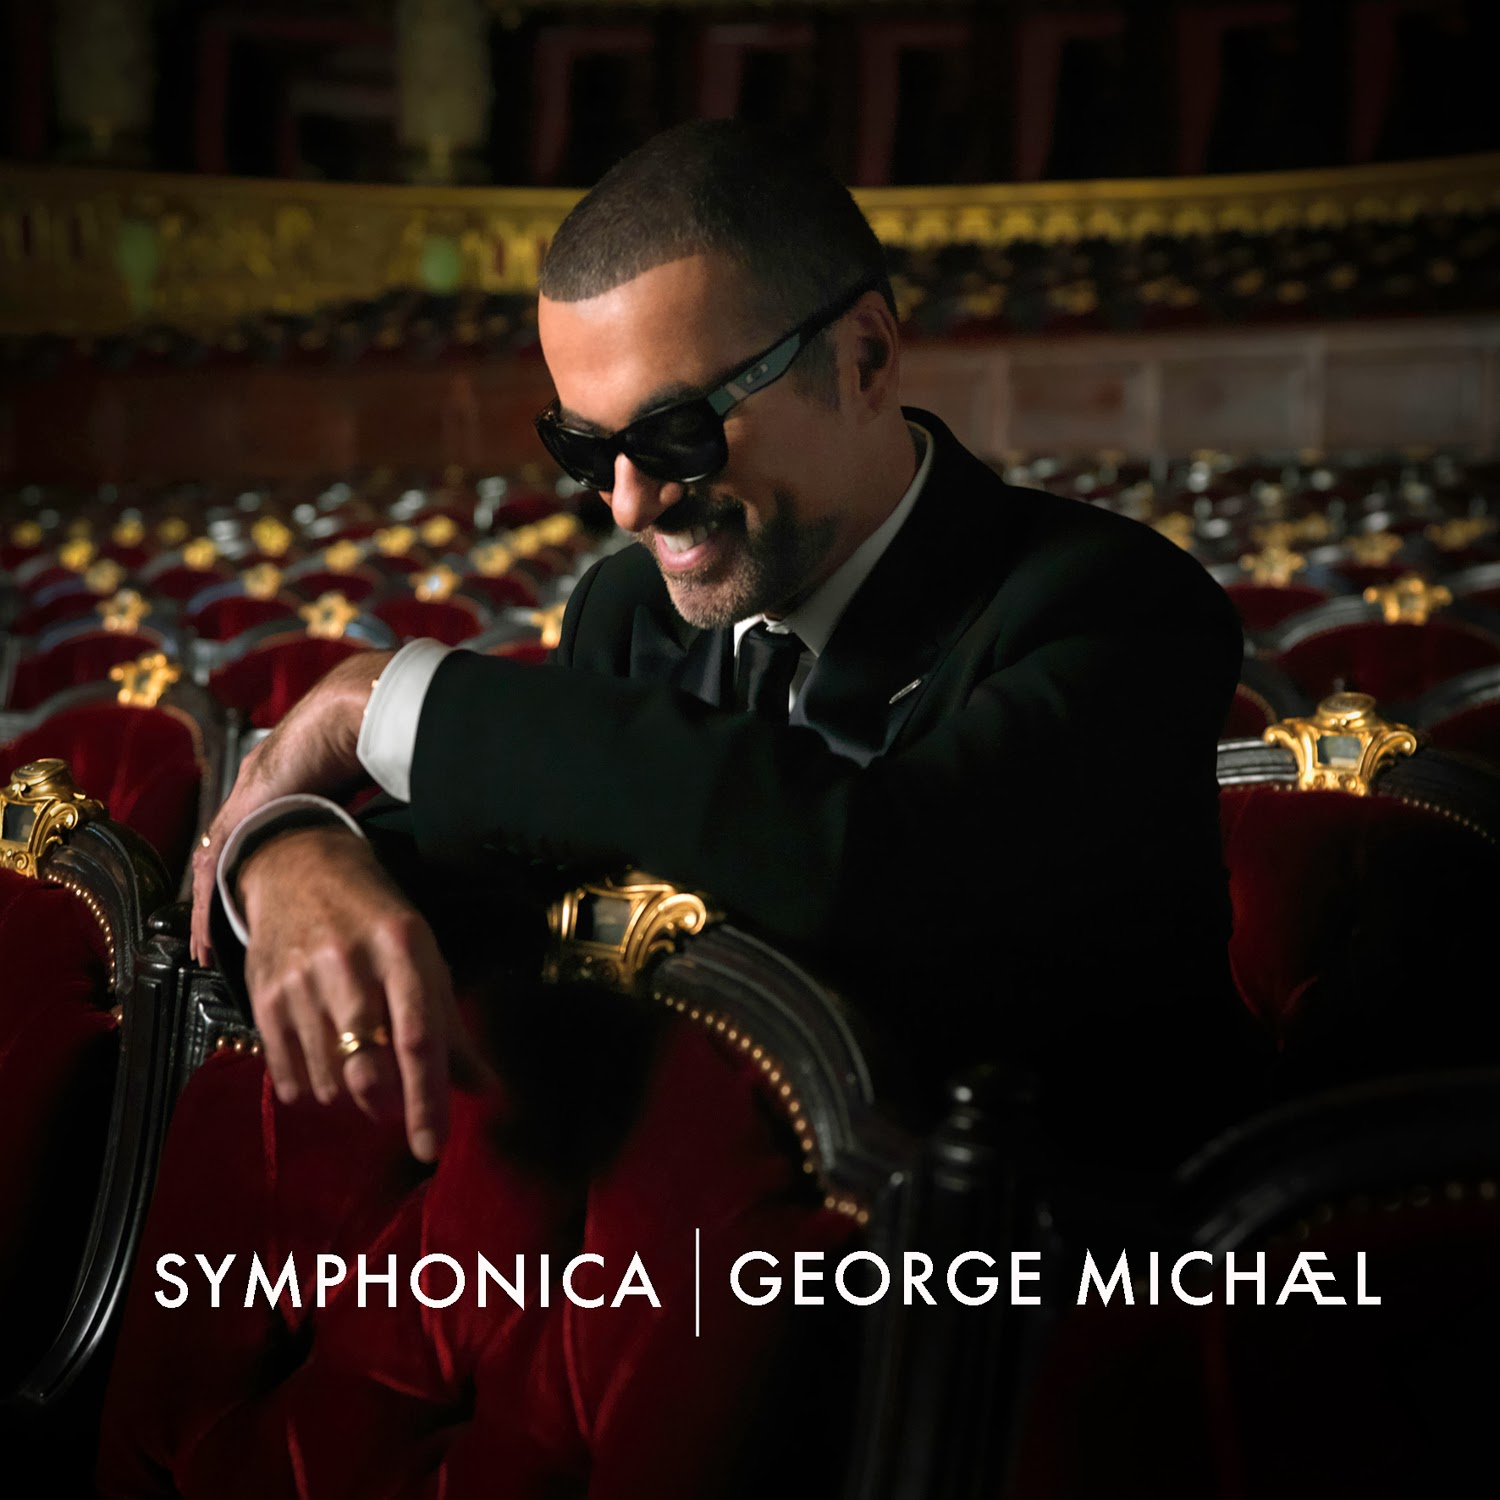 [Review] George Michael, [Symphonica]